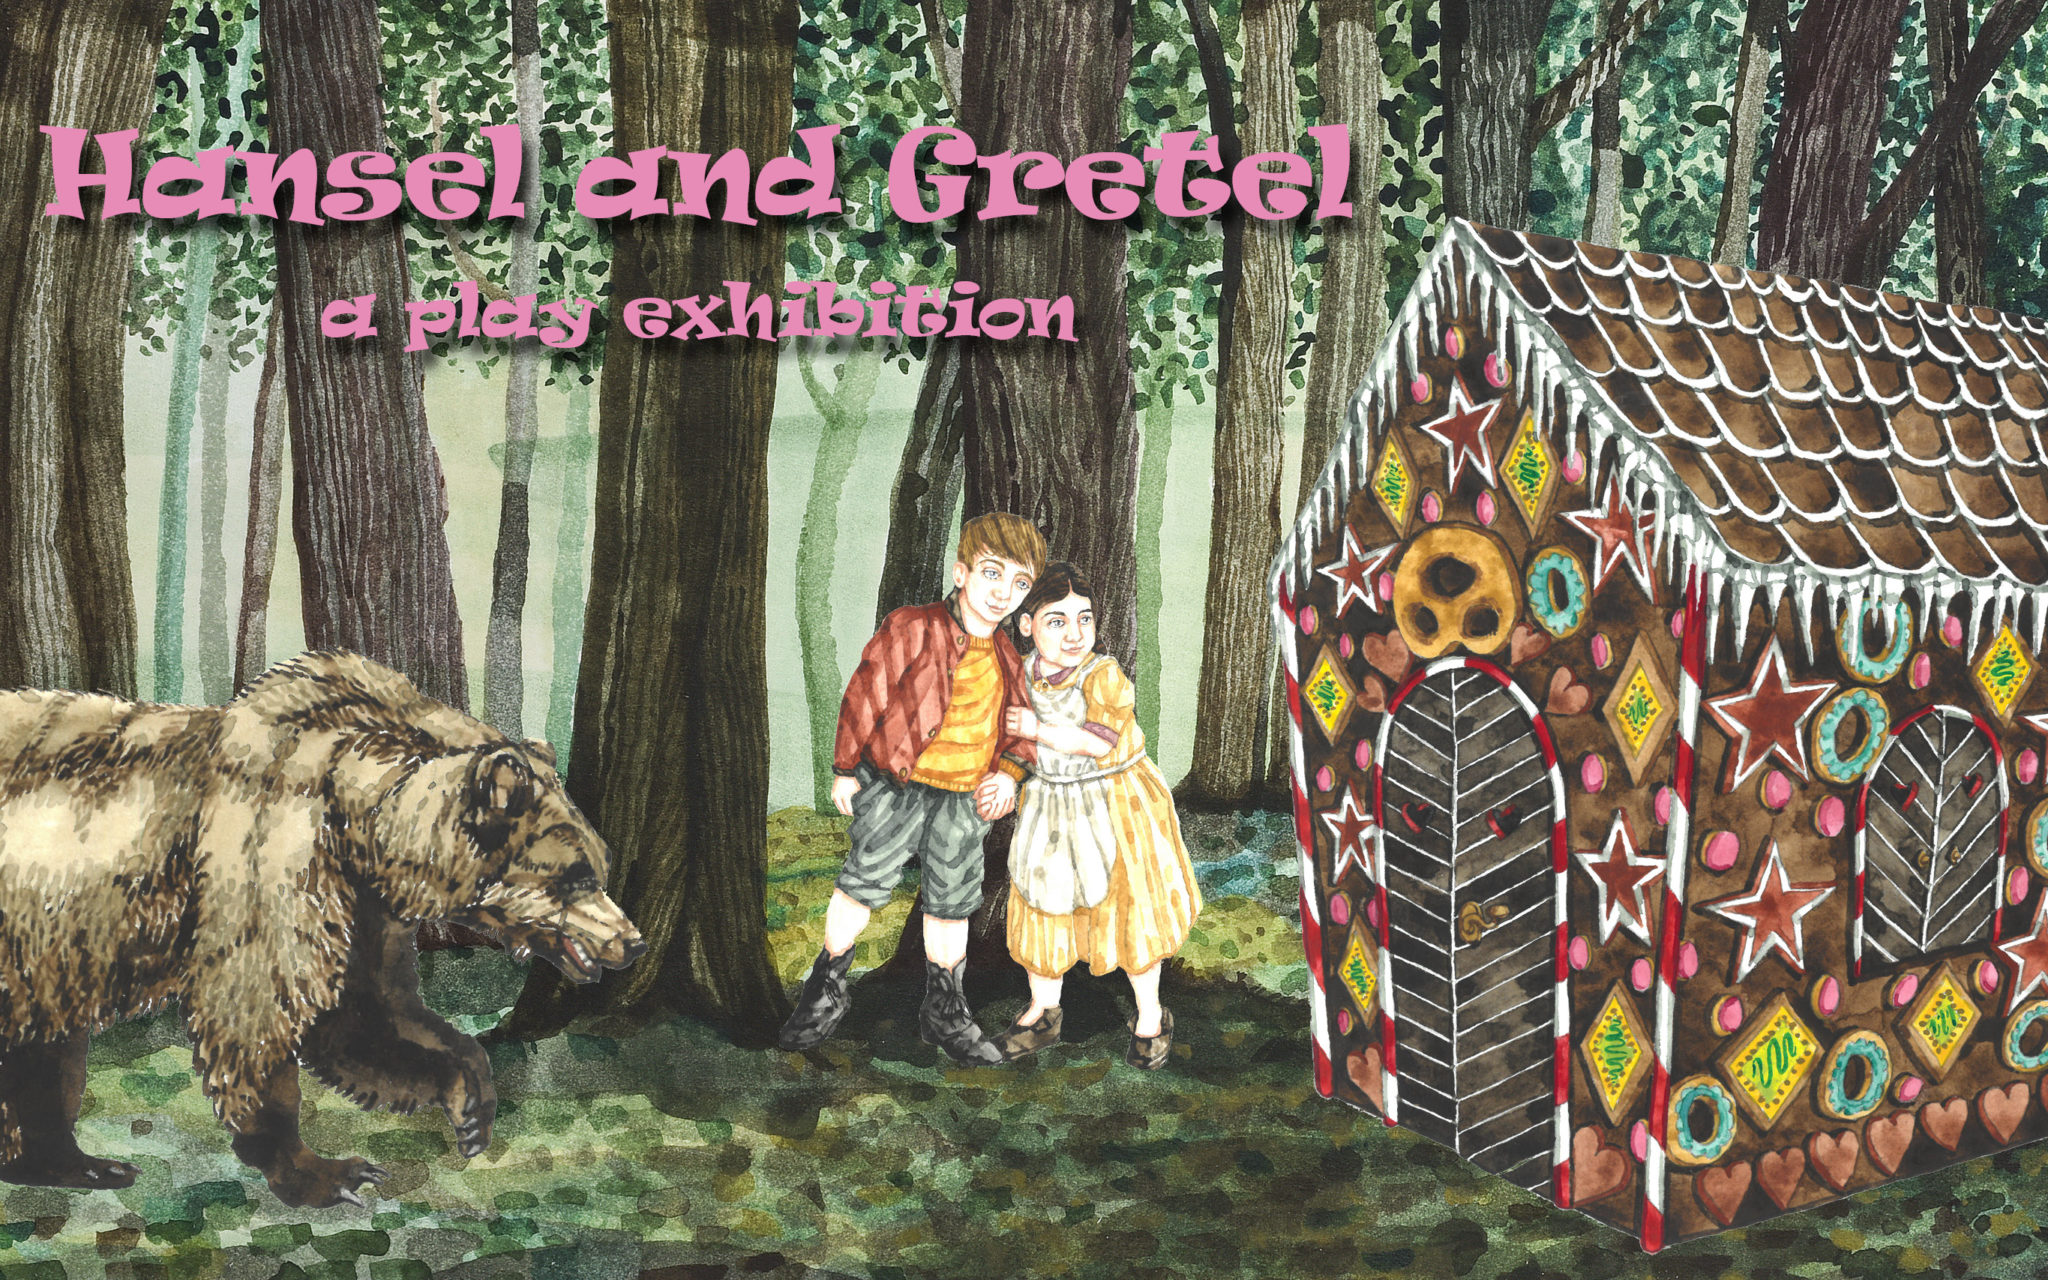 Hansel and Gretel – a play exhibiton